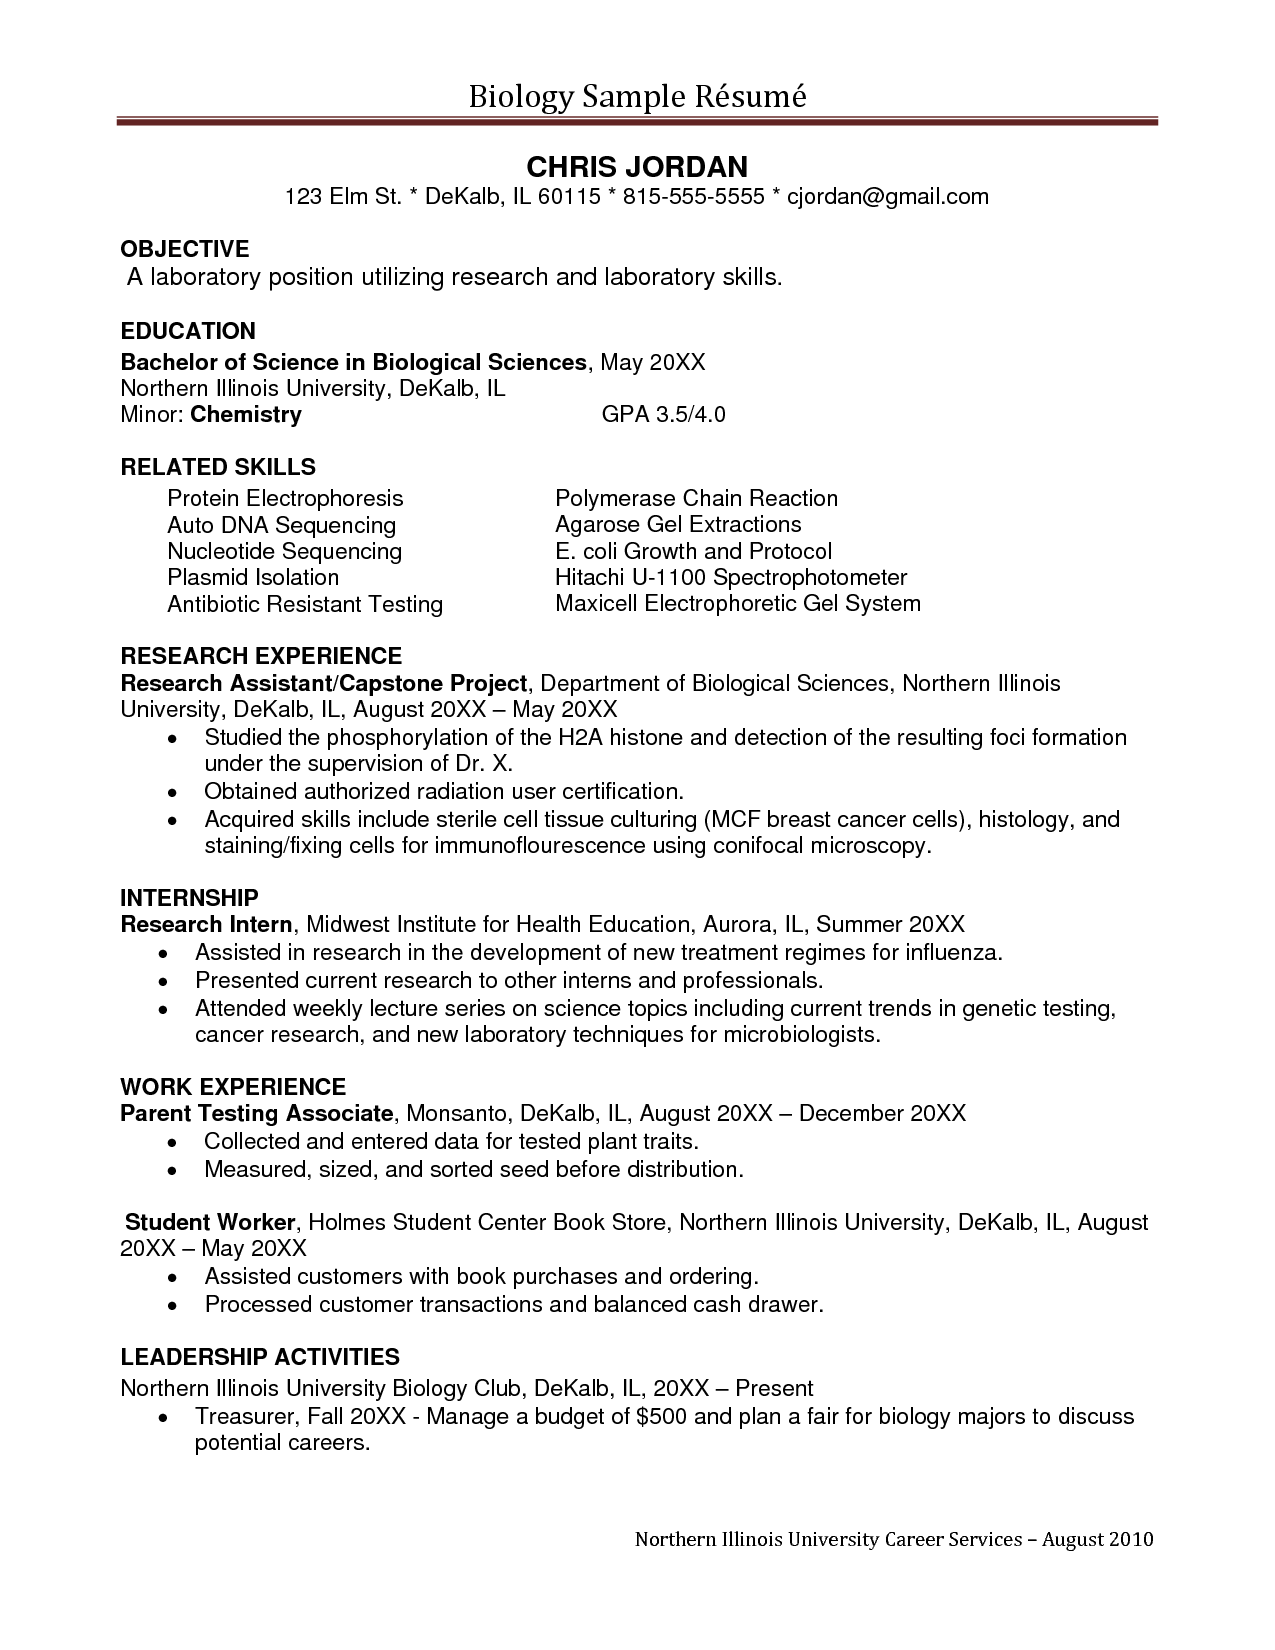 Objectives In Resume Sample Undergraduate Research Assistant Resume Sampleĺ